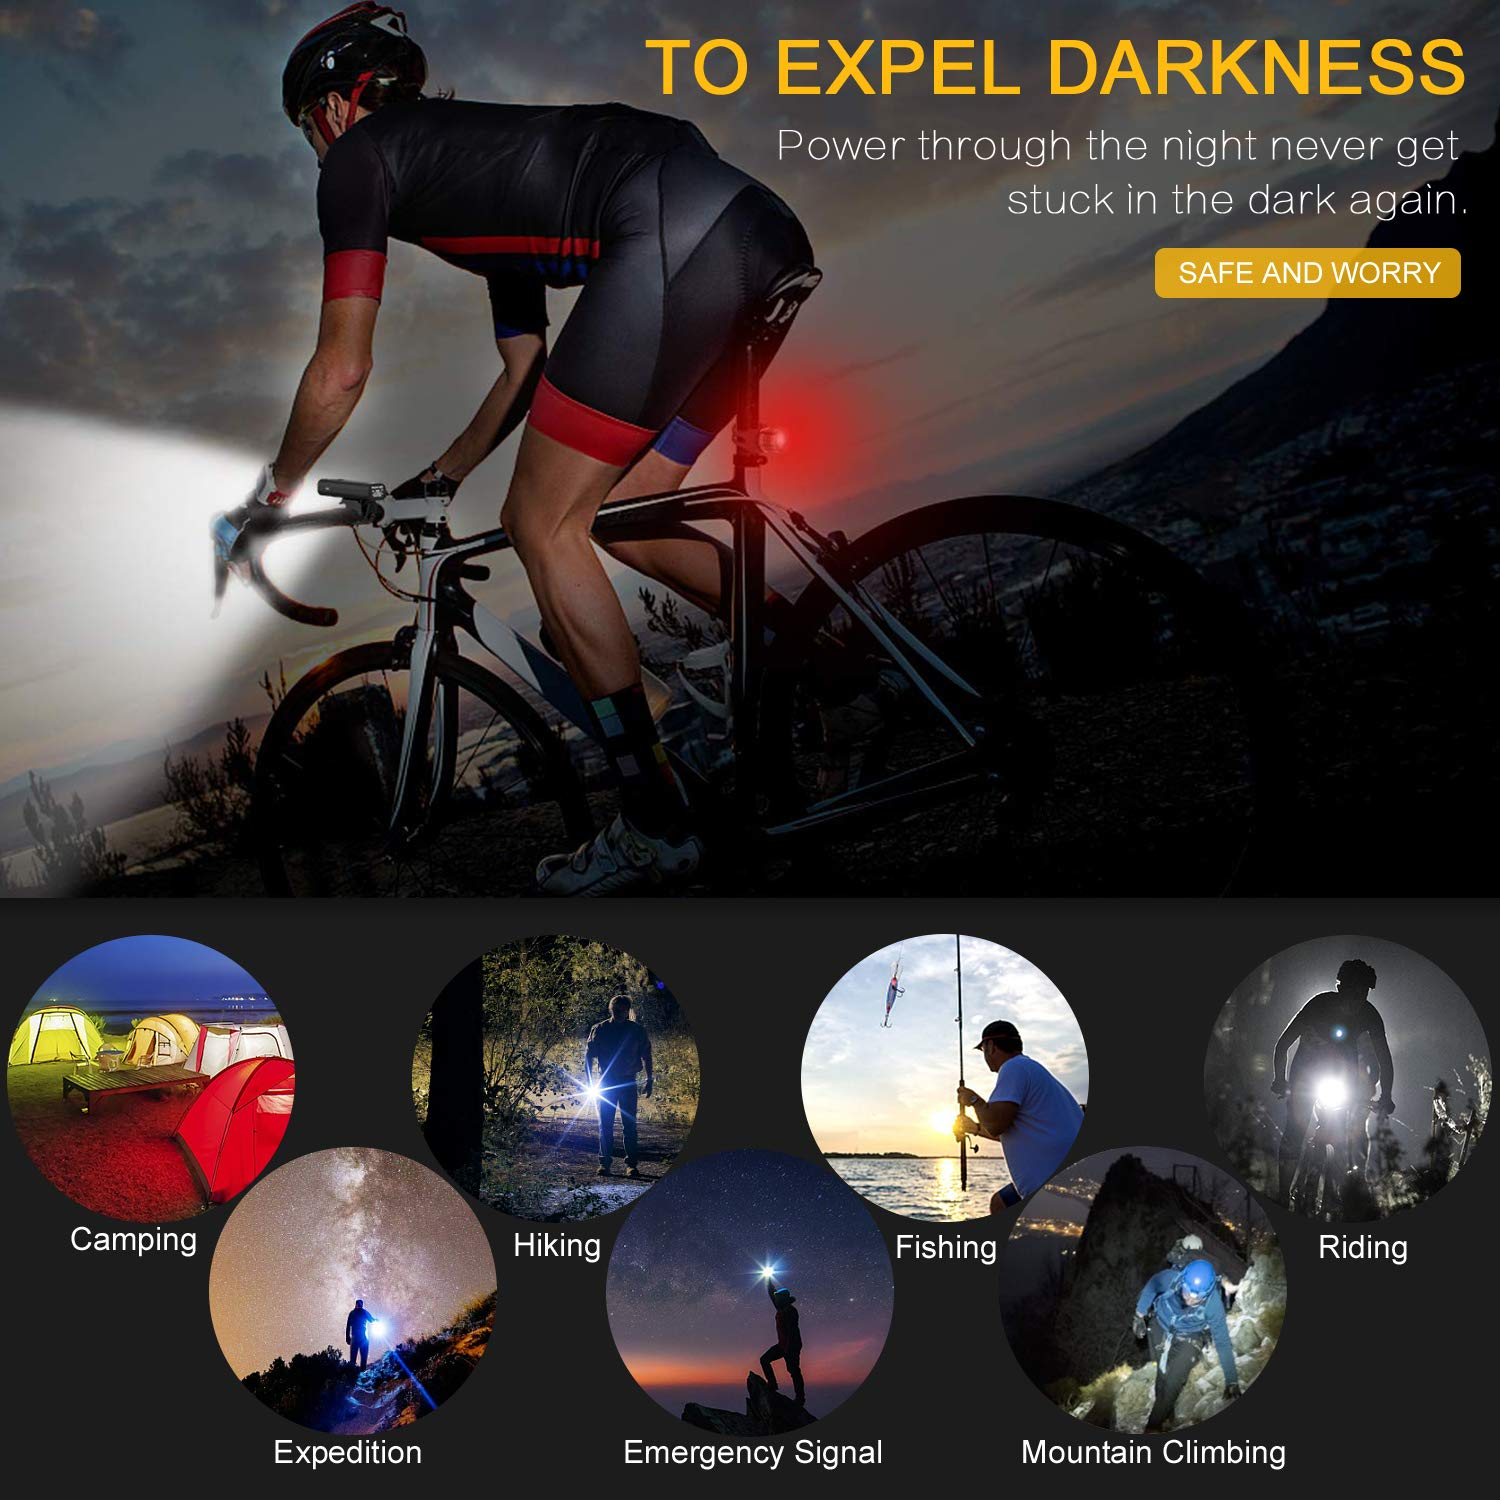 USB Rechargeable Bike Headlight & Taillight Set 3 LED Bike Light 1000 Lumen Super Bright Bicycle Light IPX5 Waterproof Powerful Safety Flashlight for Riding Hiking Camping Cycling Mountain St